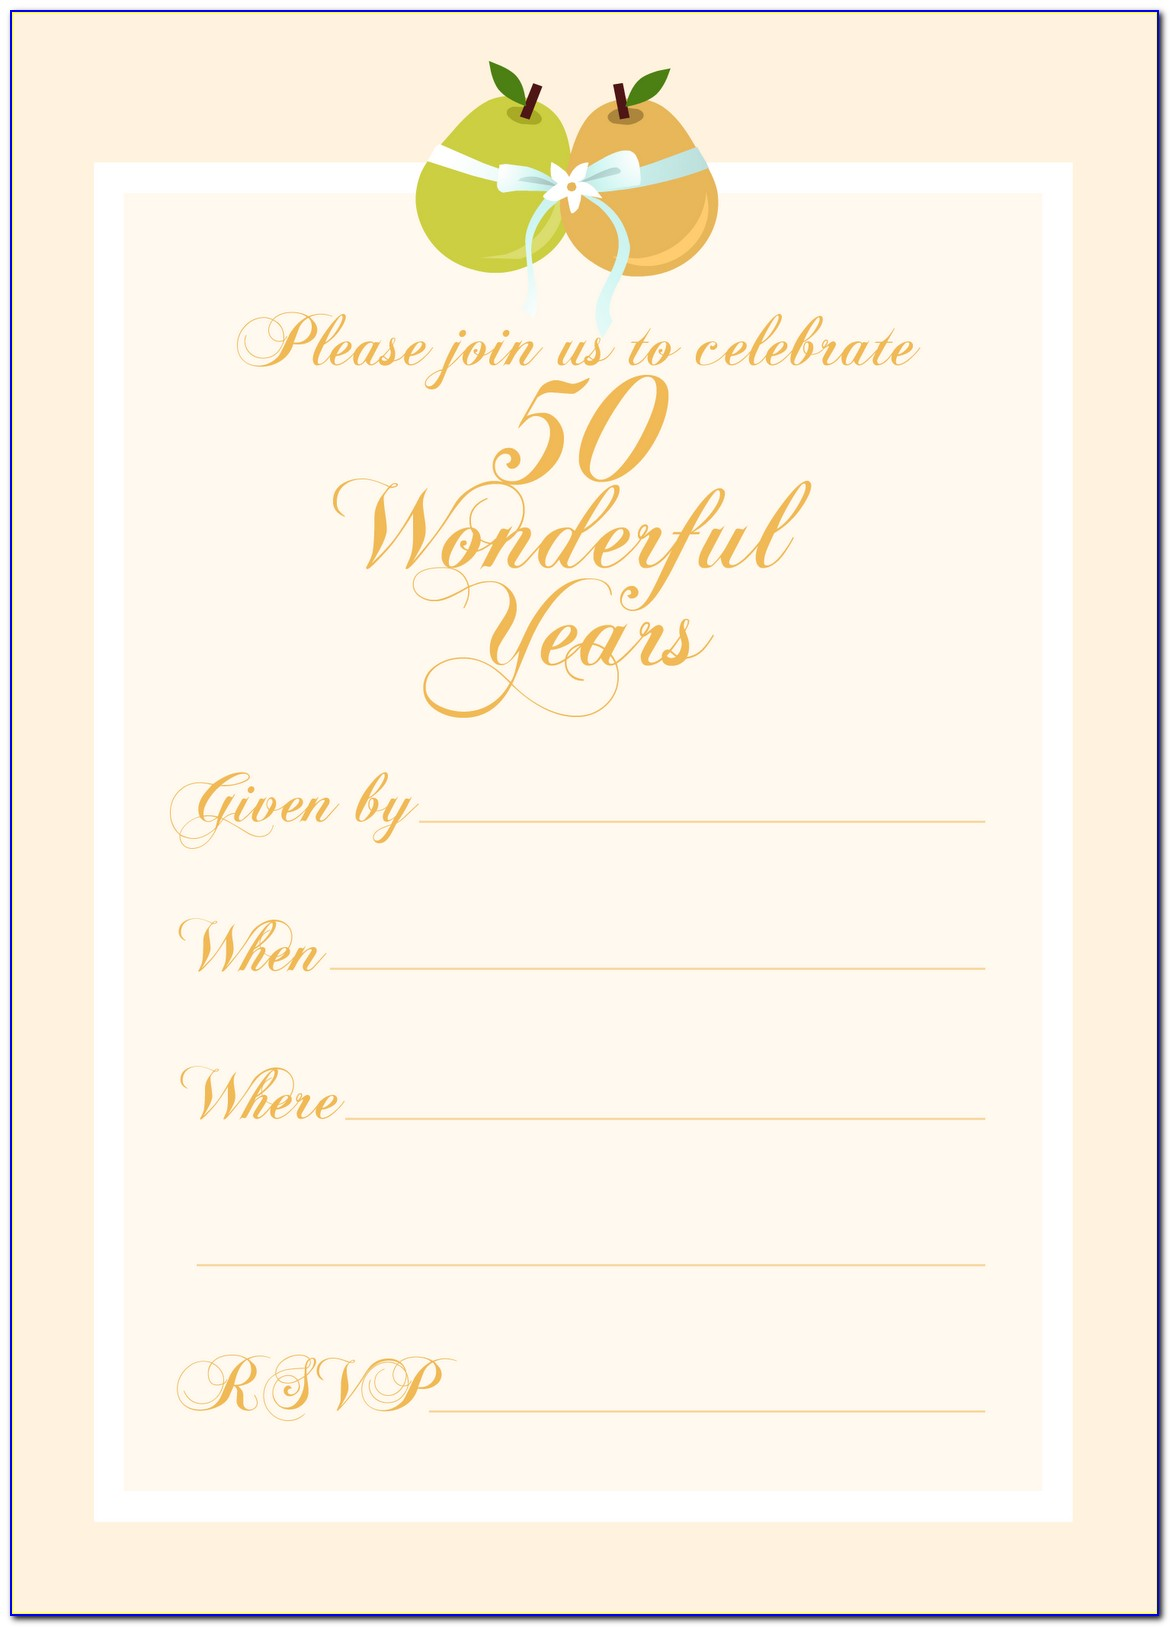 Free Printable 50th Wedding Anniversary Invitation Templates